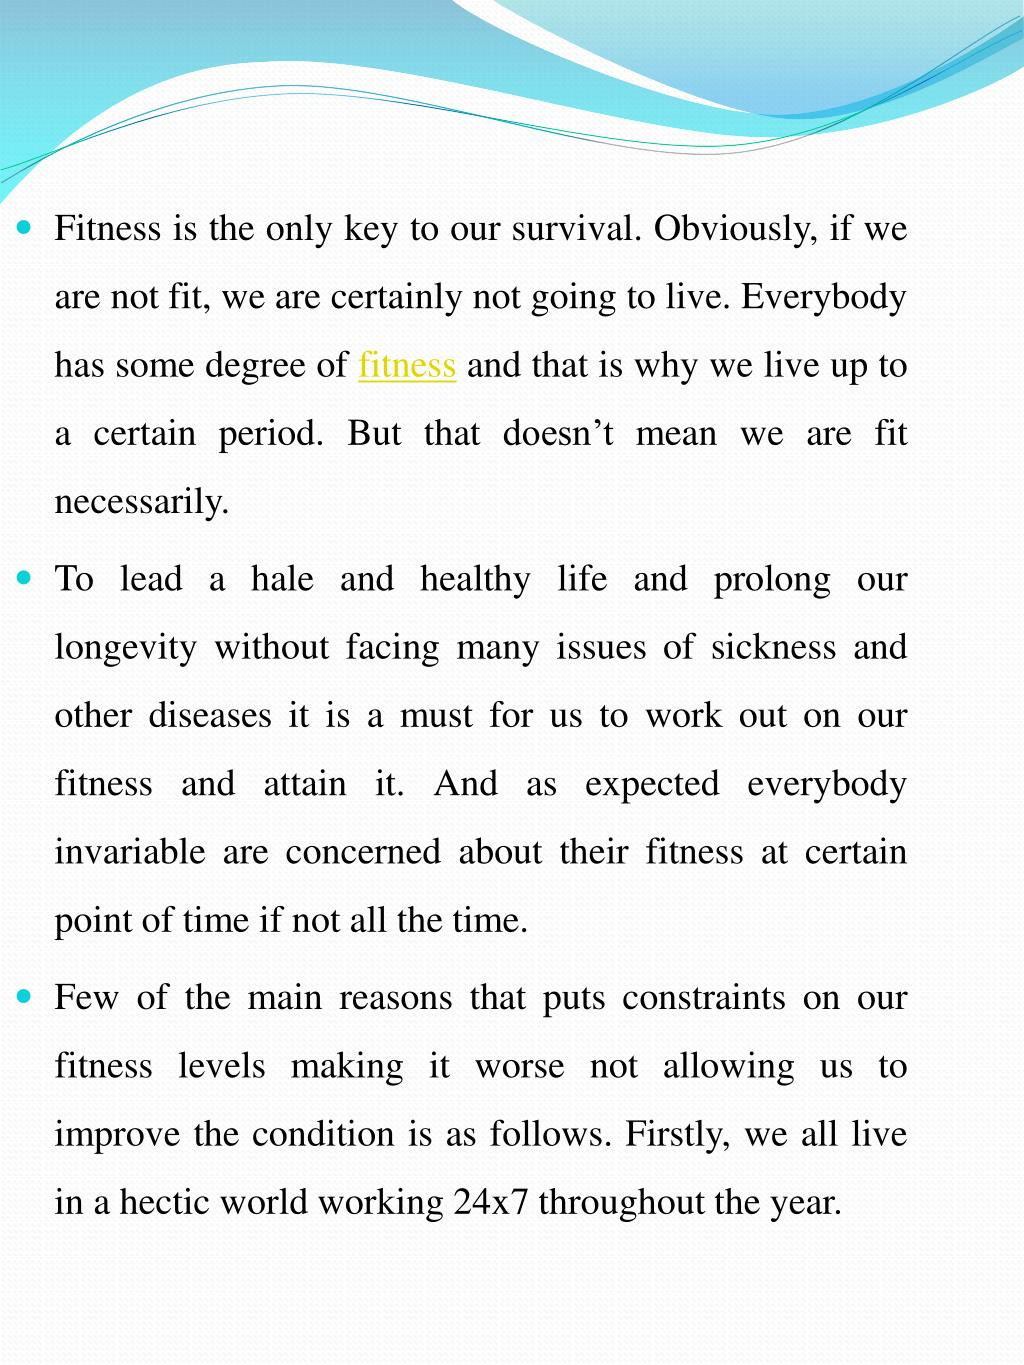 Fitness is the only key to our survival. Obviously, if we are not fit, we are certainly not going to live. Everybody has some degree of